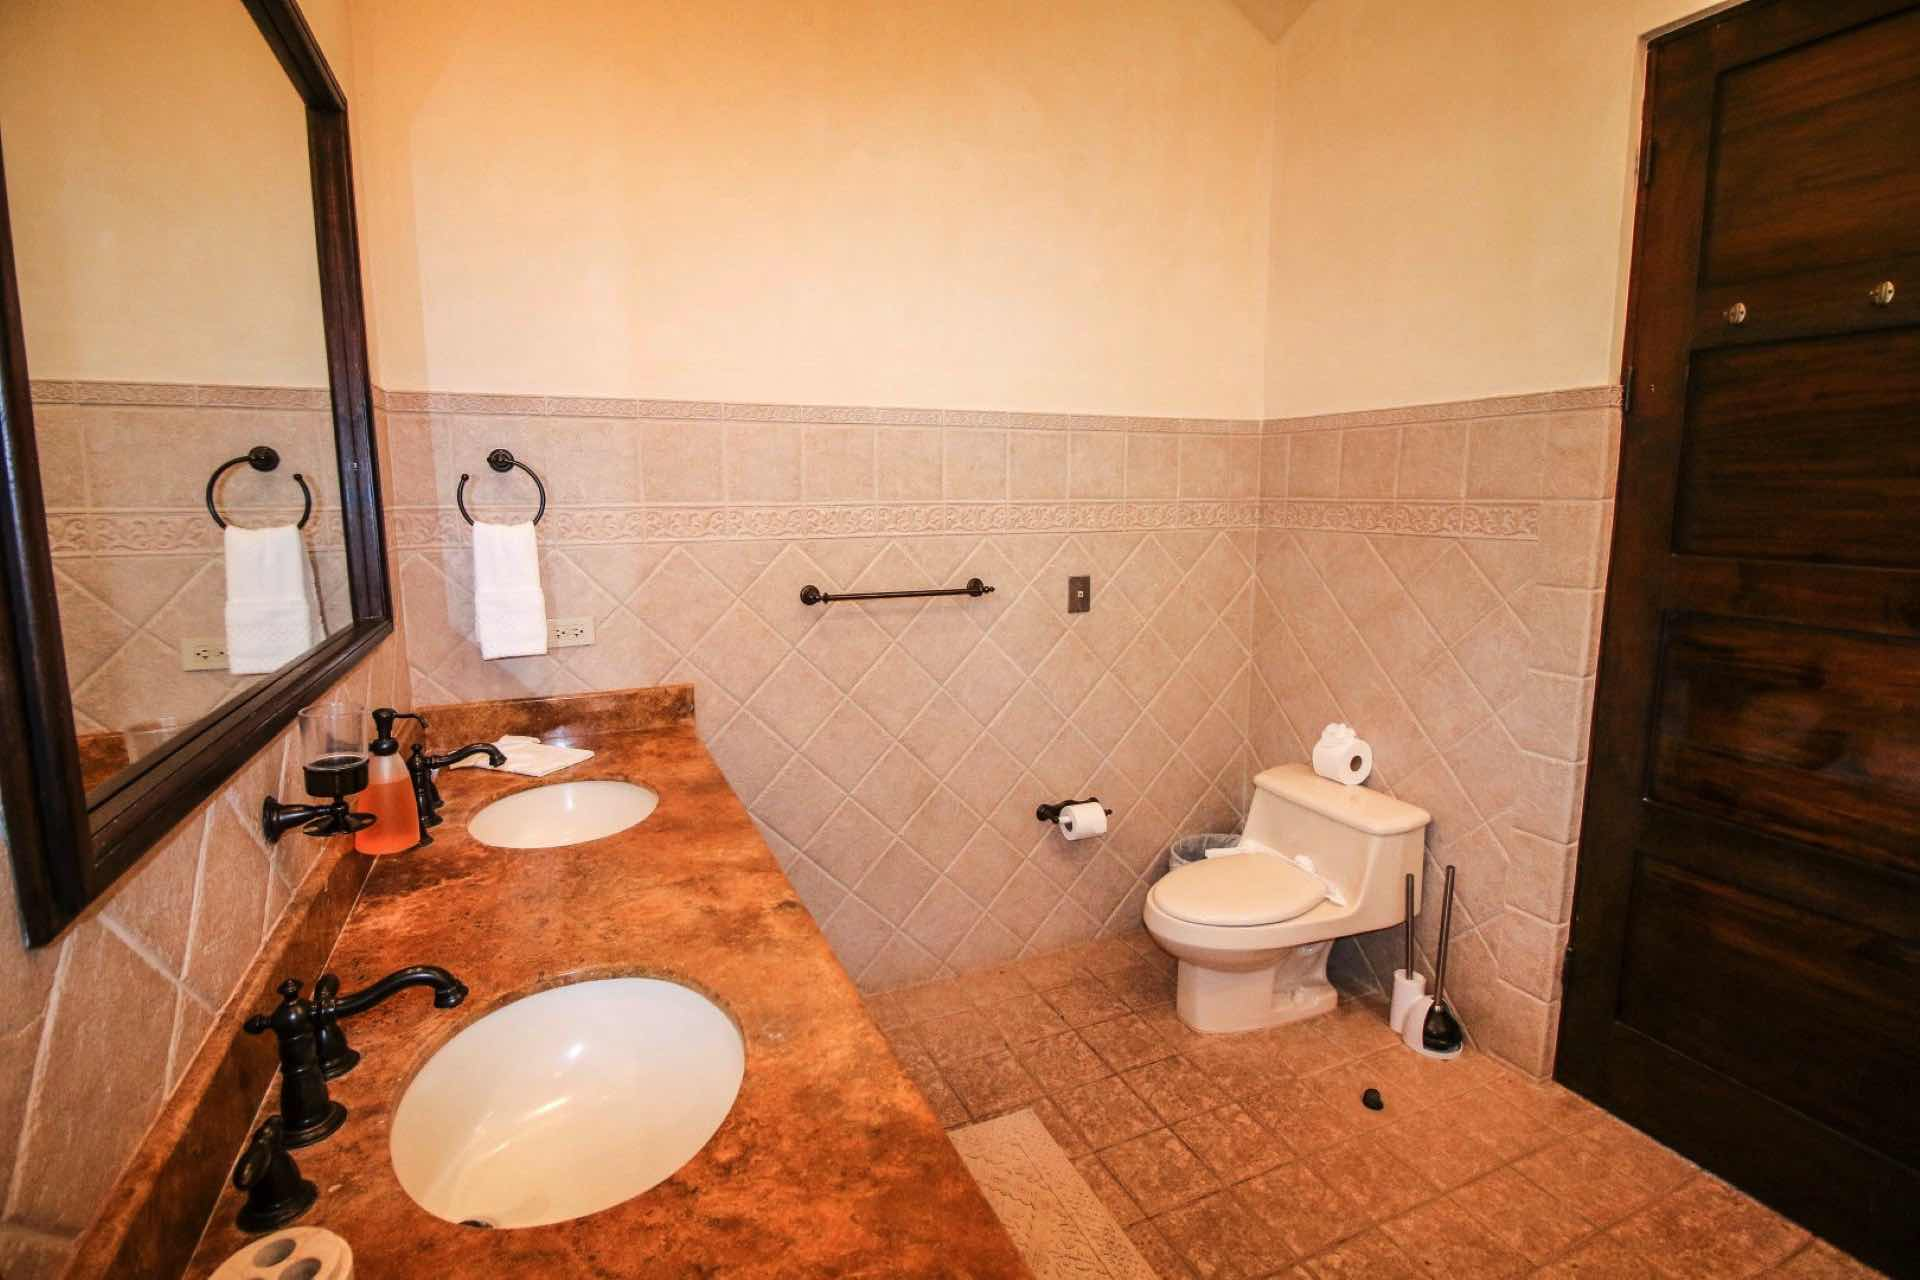 Double sink bathroom for couples